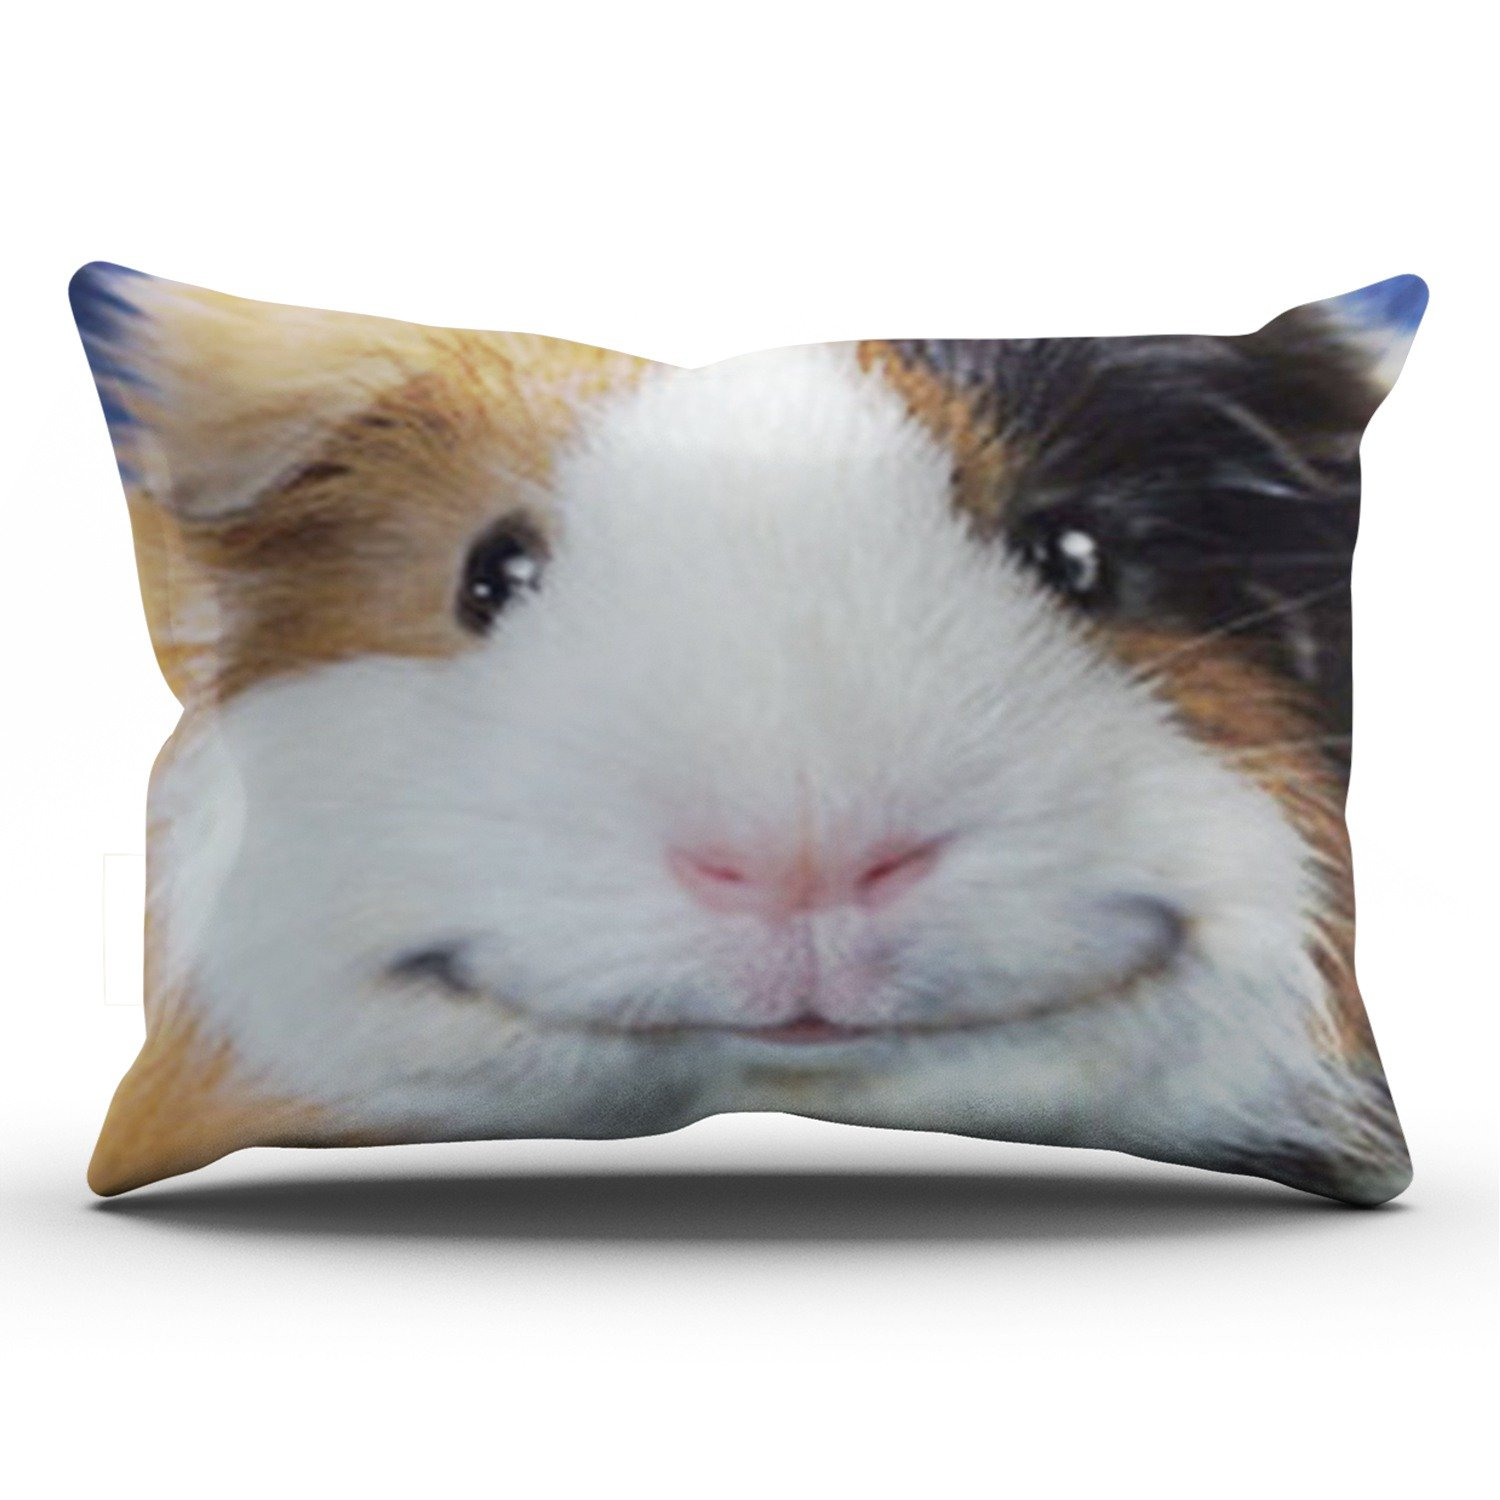 KEIBIKE Personalized Animal Pattern Funny Smiling Guinea Pig Rectangle Decorative Pillowcases Colorful Zippered King Pillow Covers Cases 20x36 Inches One Sided